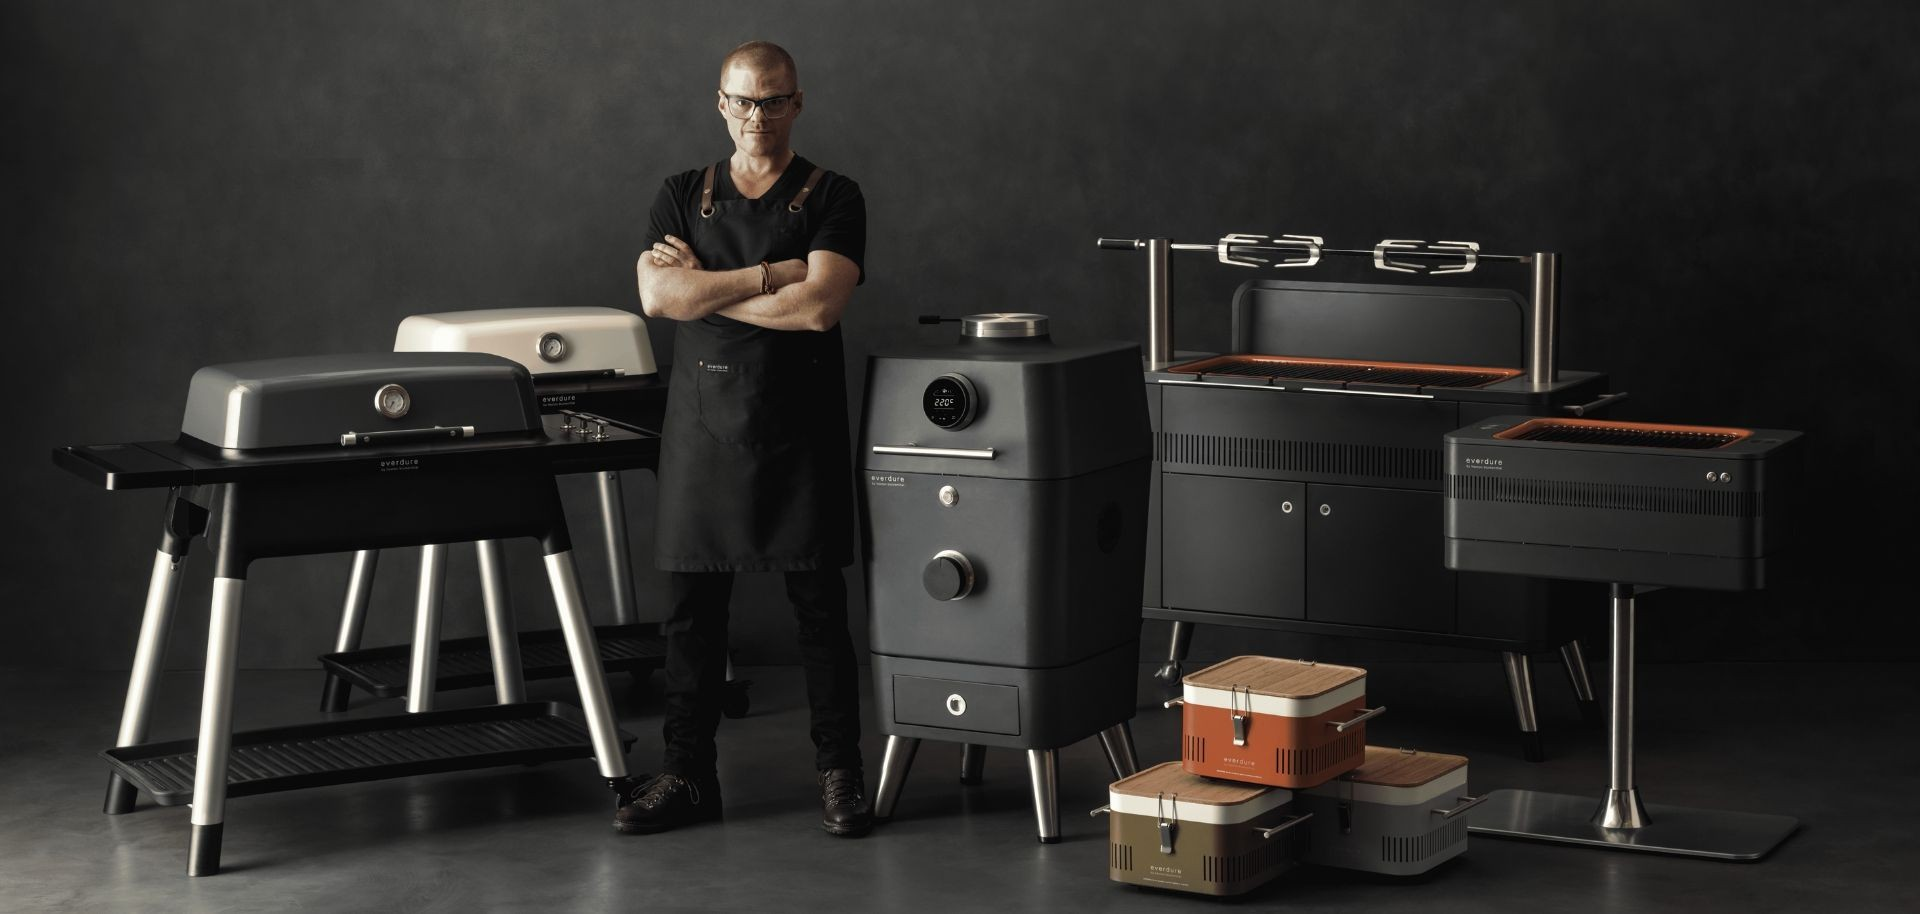 Scopri i barbecue Everdure by Heston Blumenthal e rendi speciali le tue grigliate